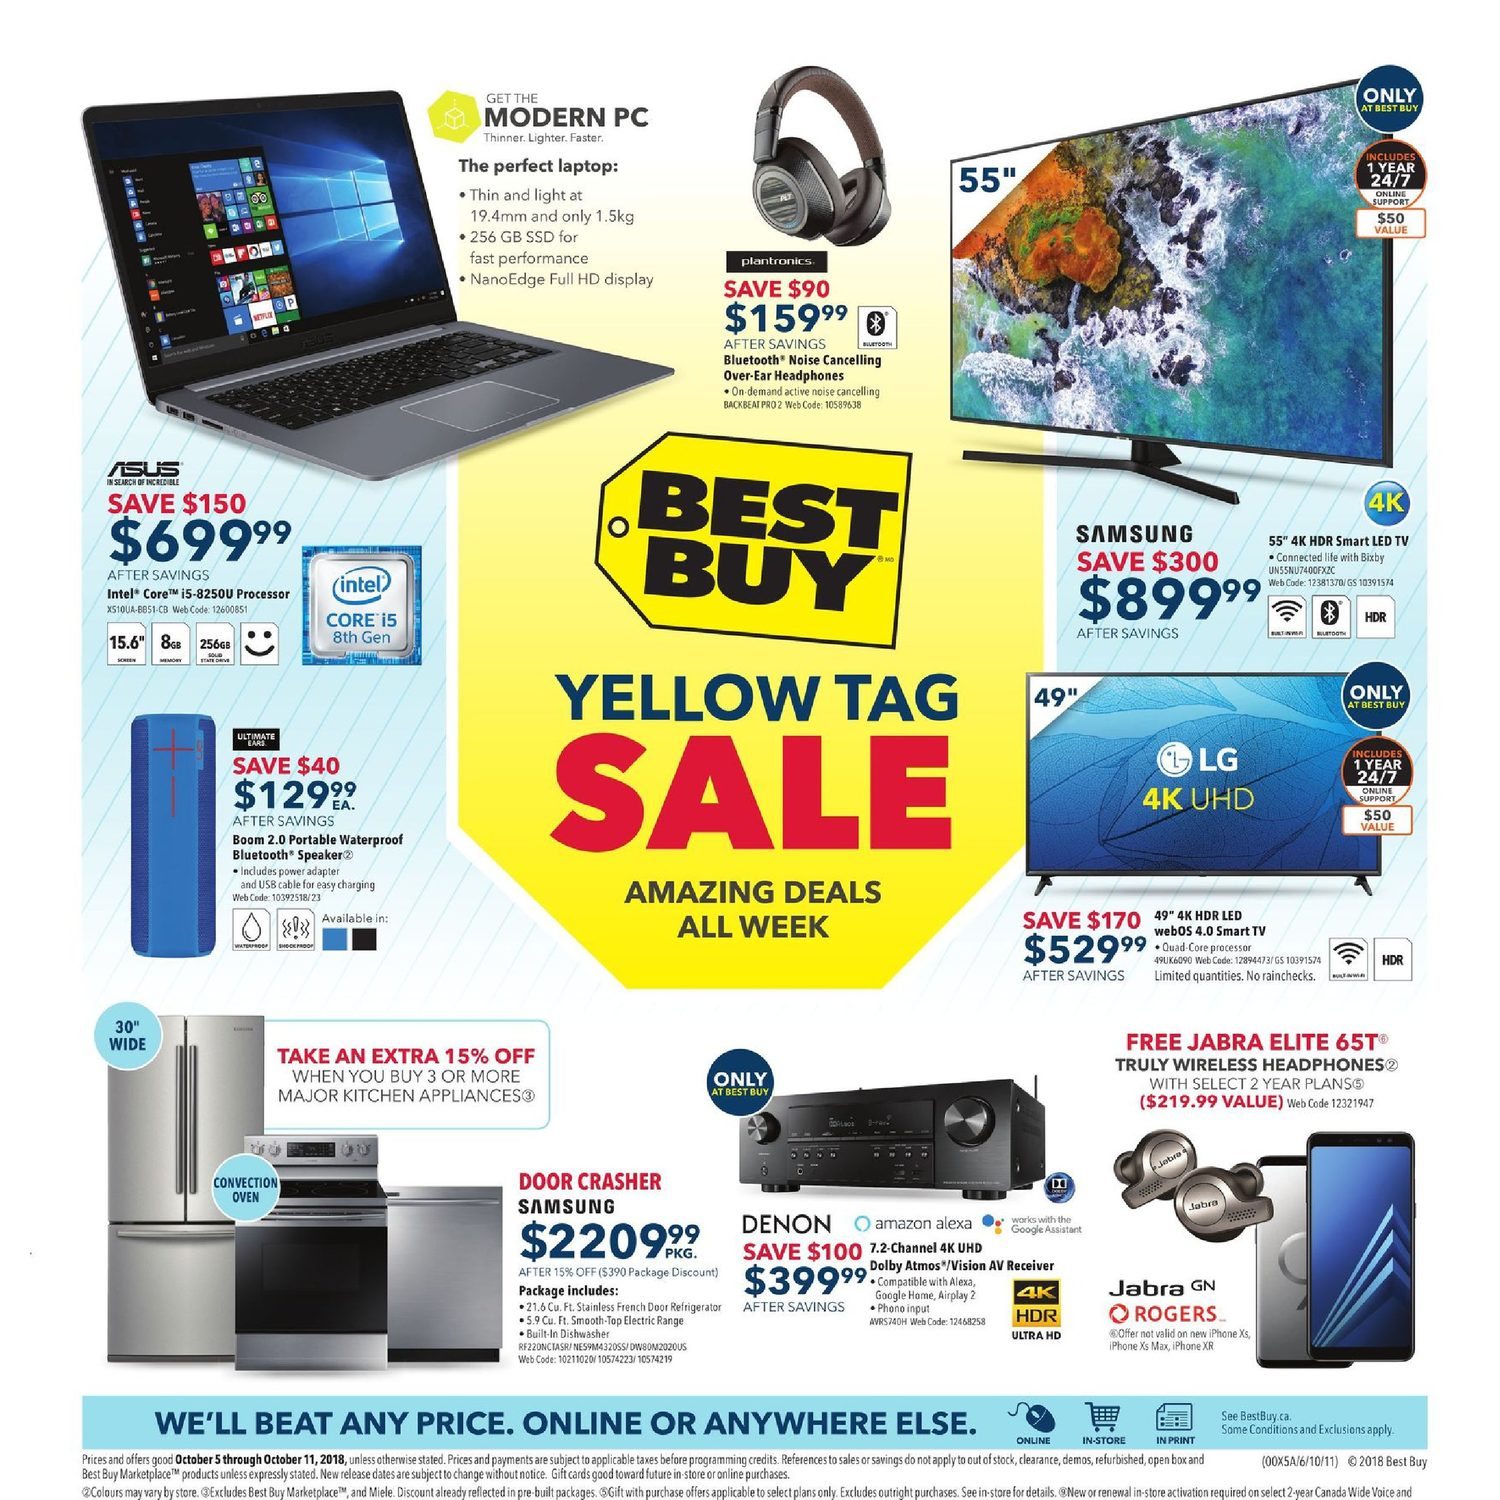 Best Buy Weekly Flyer - Weekly - Yellow Tag Sale - Oct 5